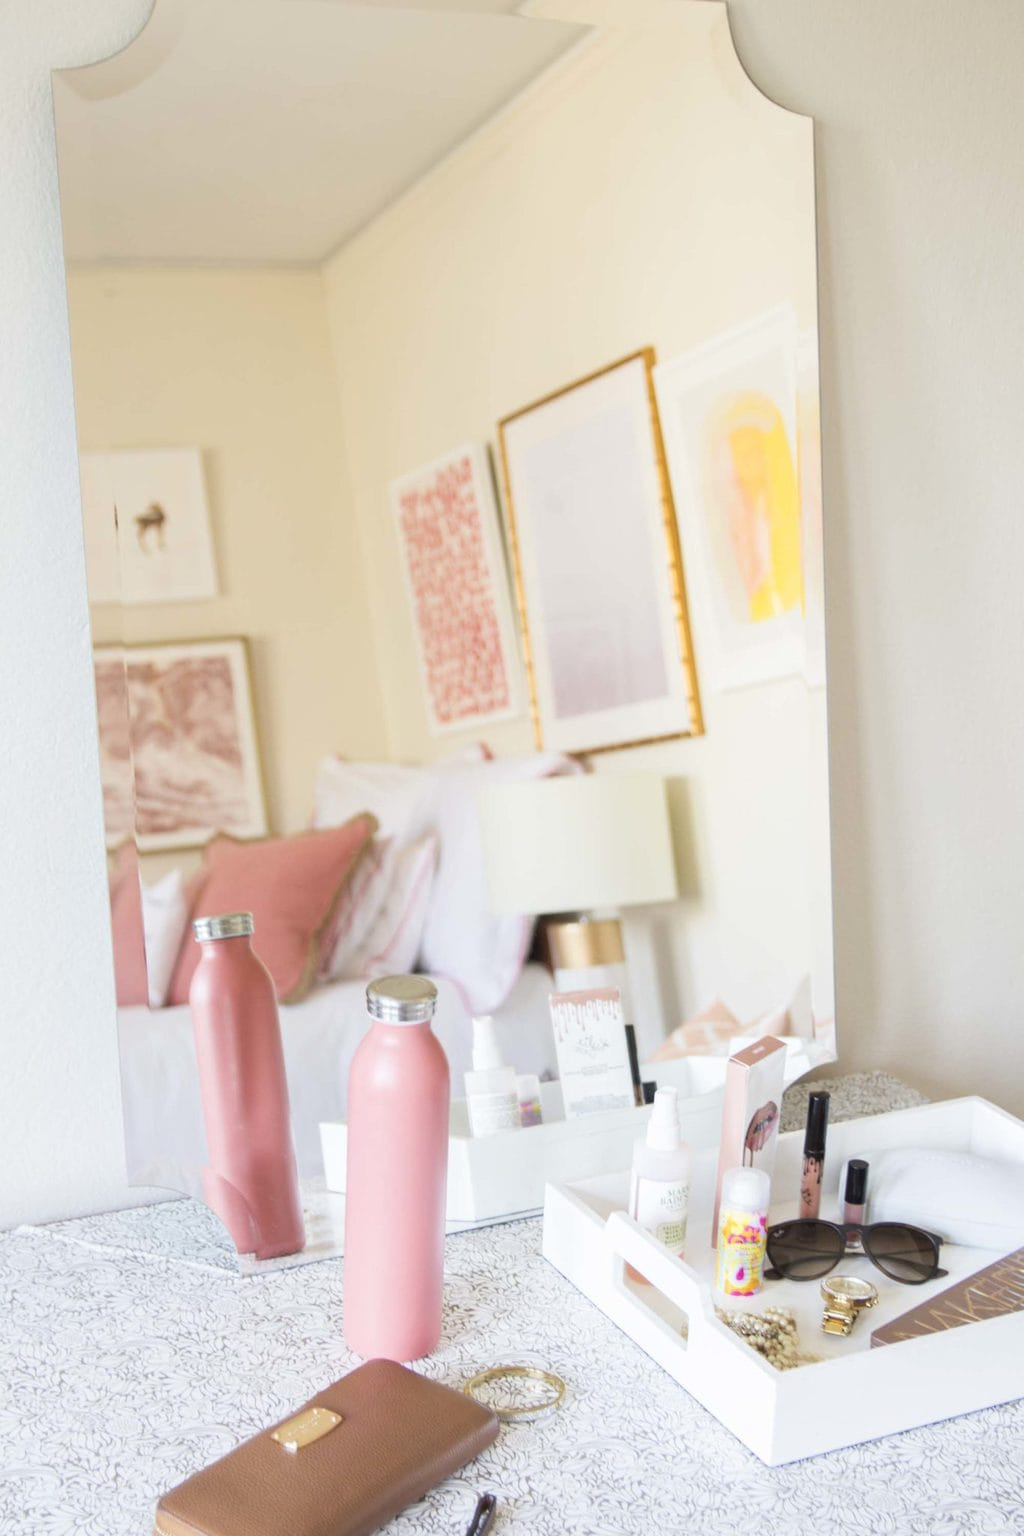 Dorm room dresser with white tray, wall mirror, and contact paper on Thou Swell @thouswellblog